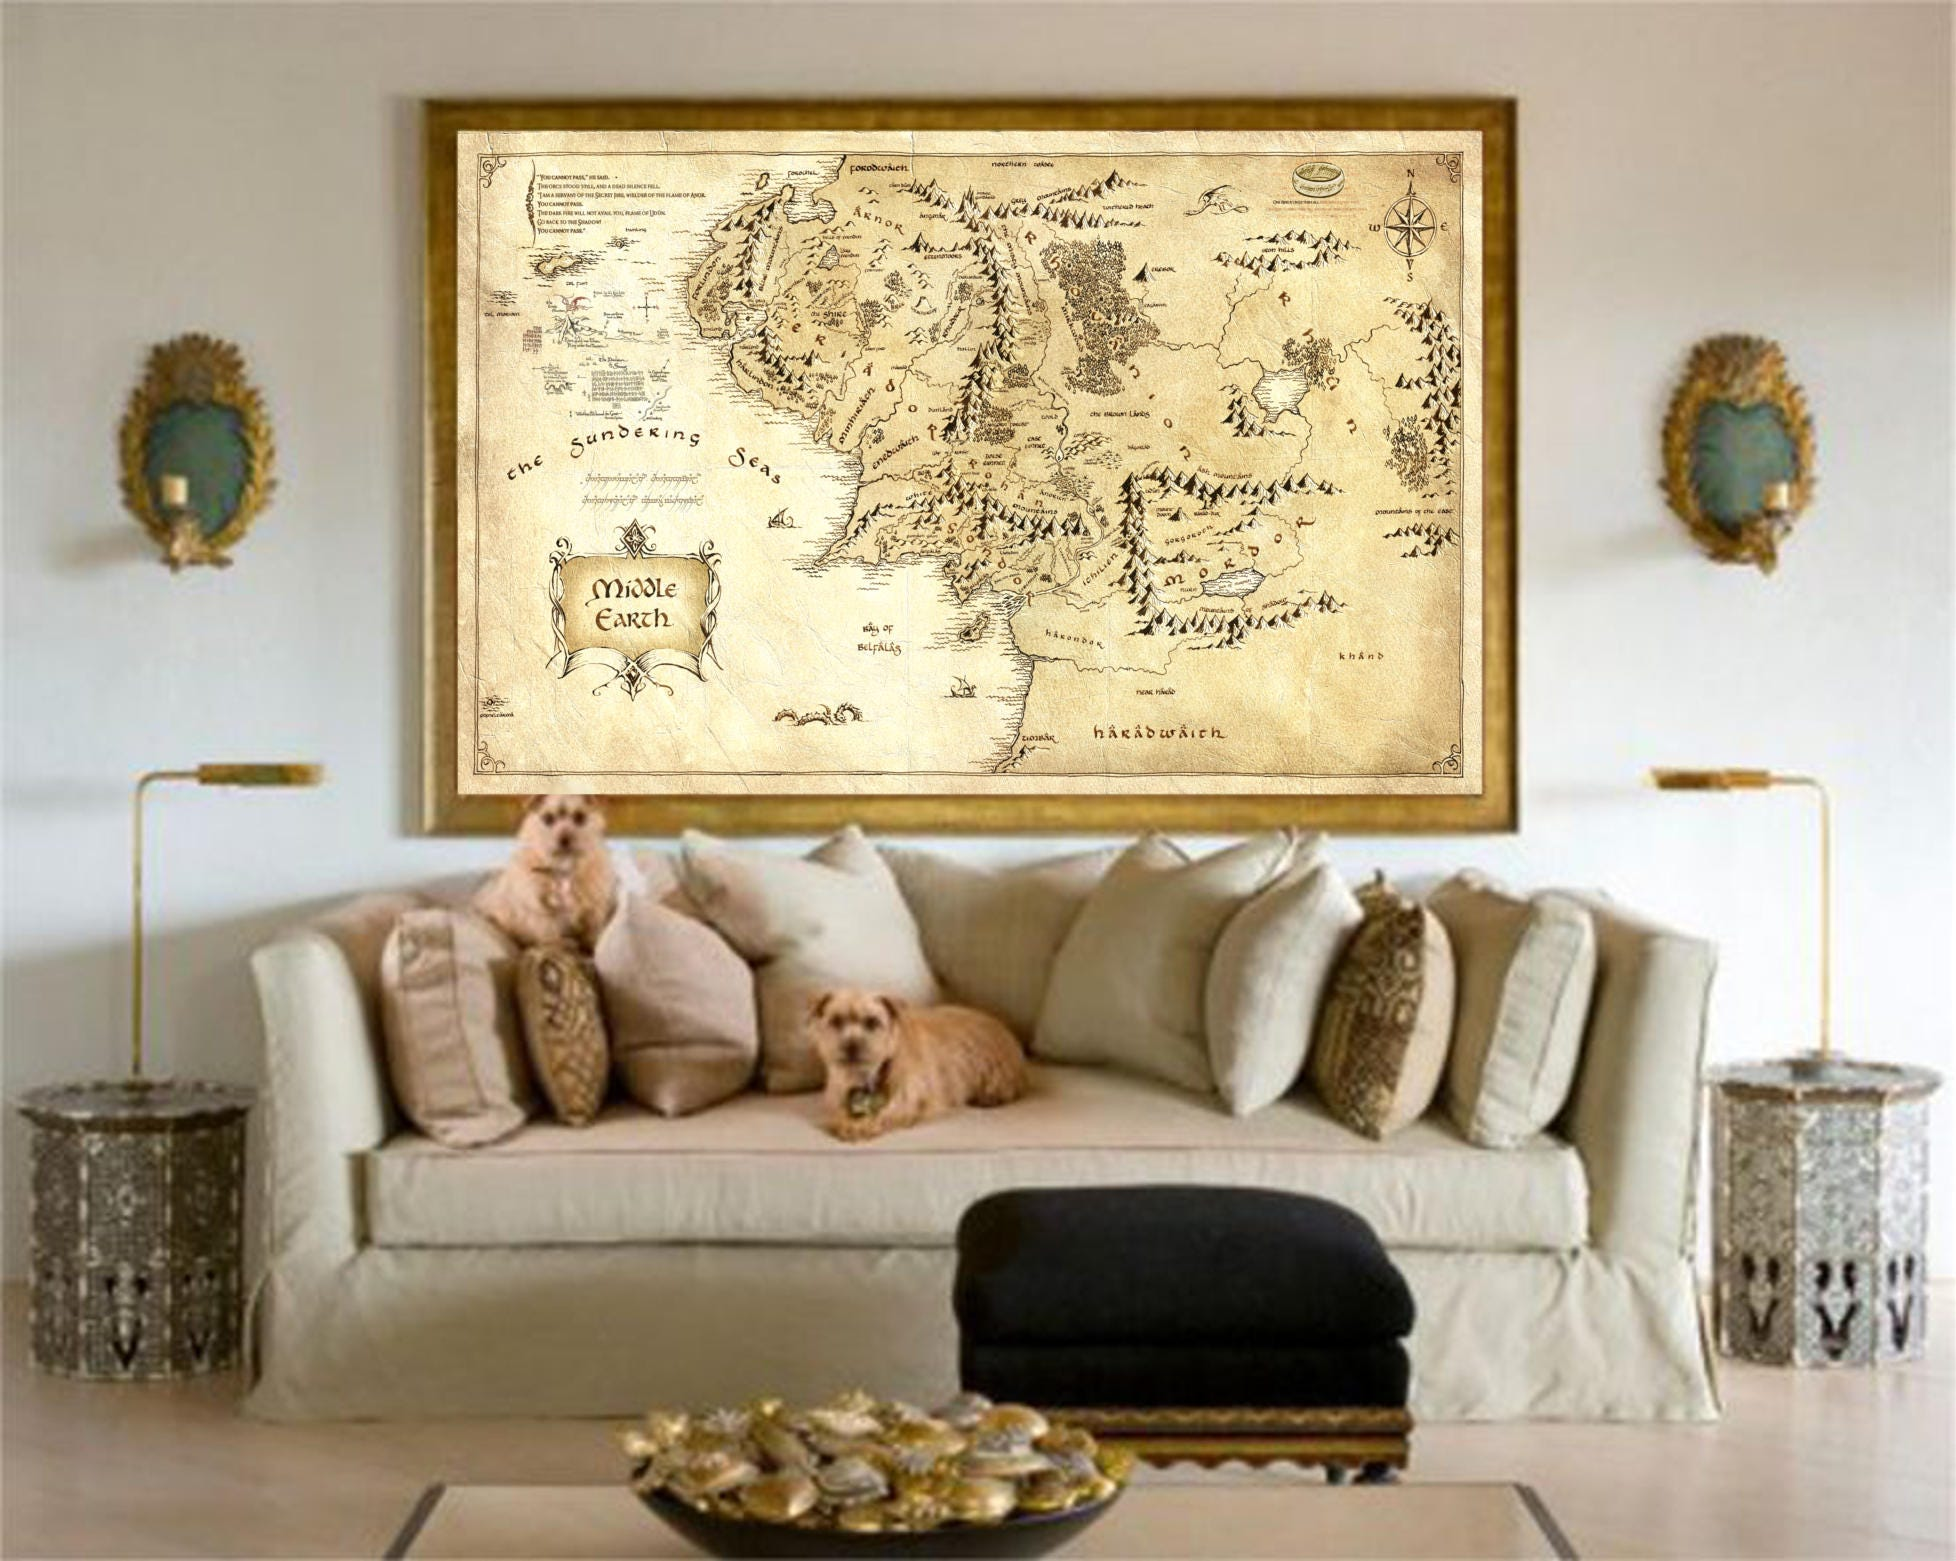 Lord of the rings christmas gifts christmas gifts for zoom amipublicfo Choice Image